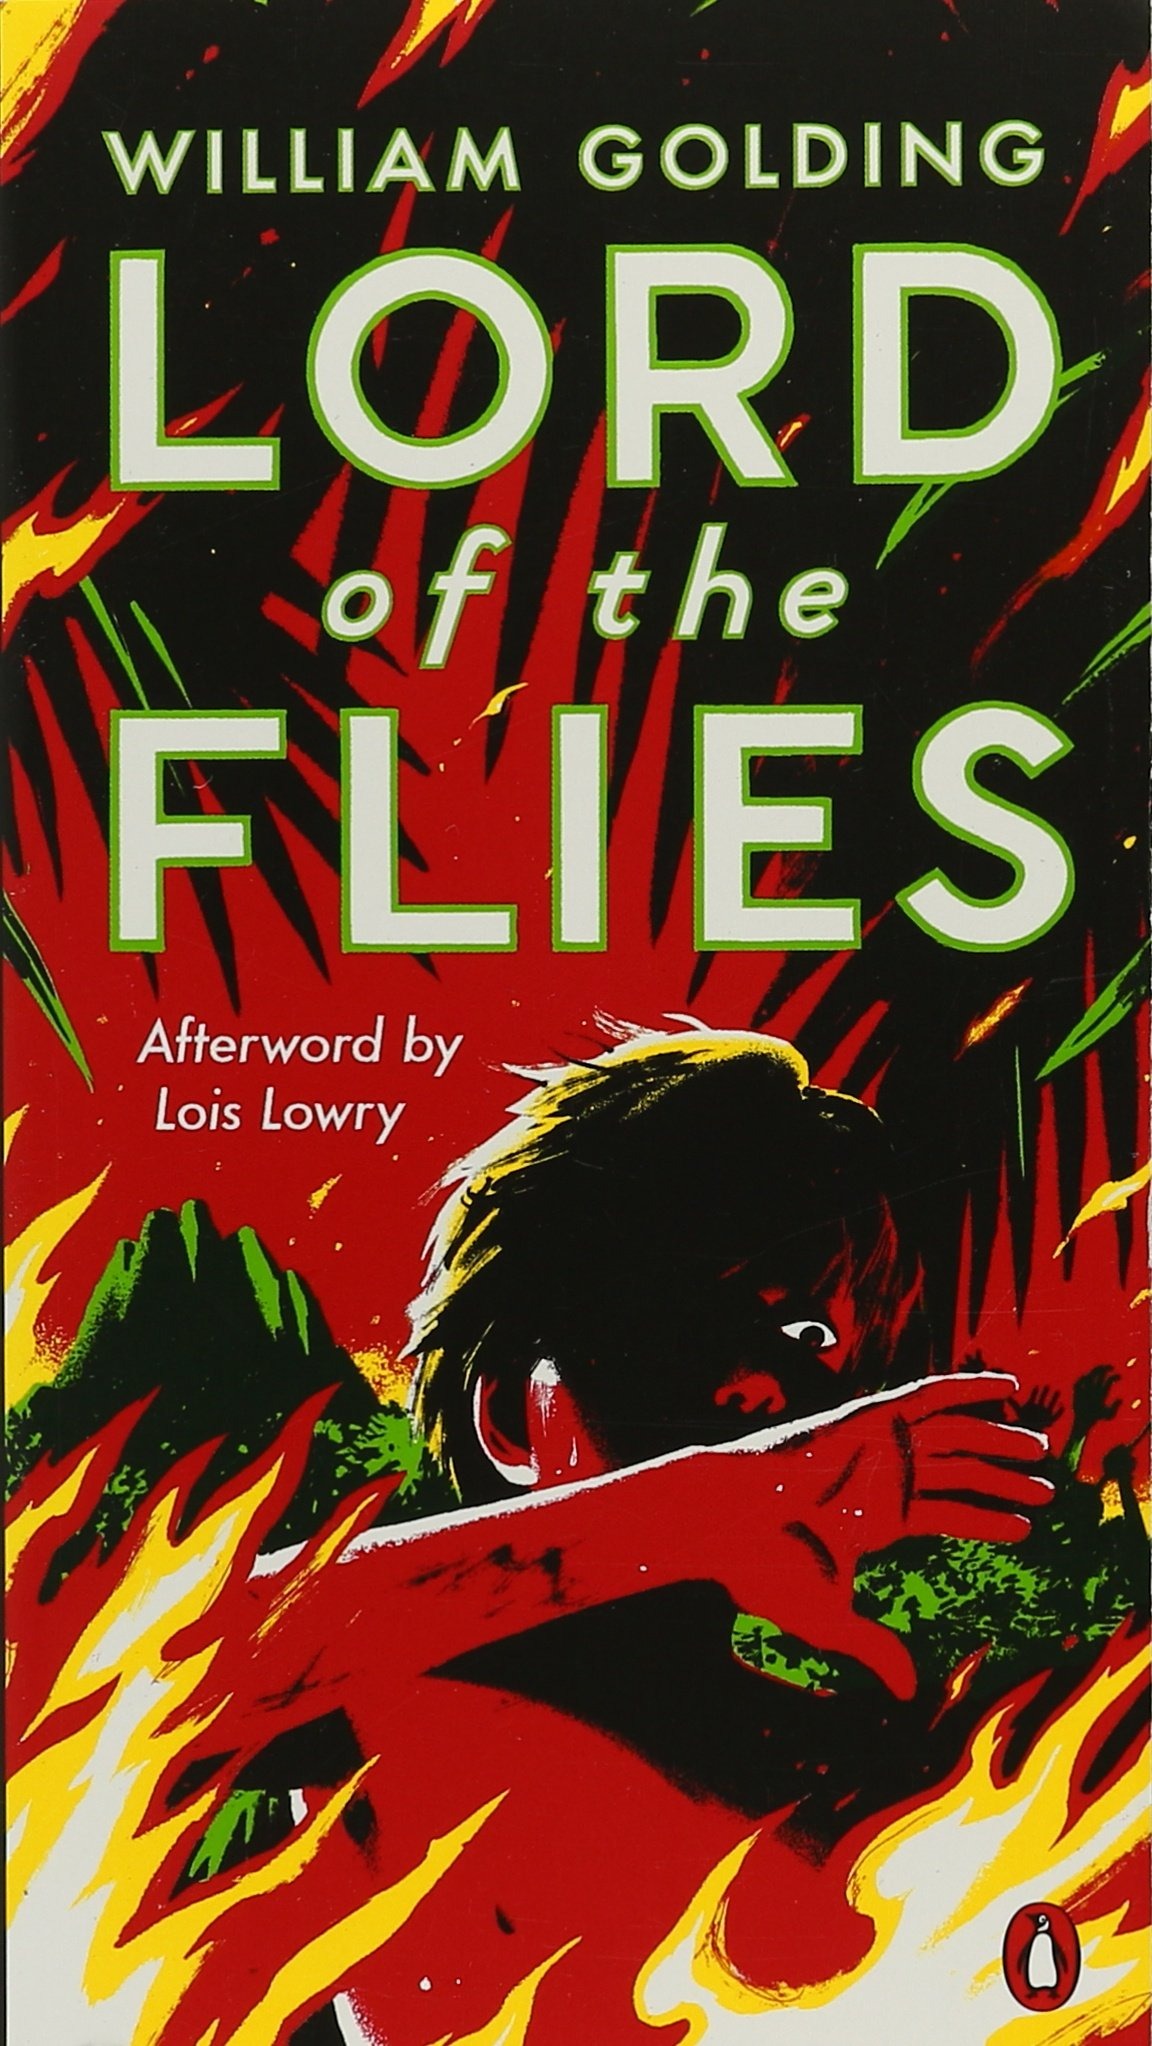 lord of the flies william golding e l epstein 9780399501487 lord of the flies william golding e l epstein 9780399501487 com books